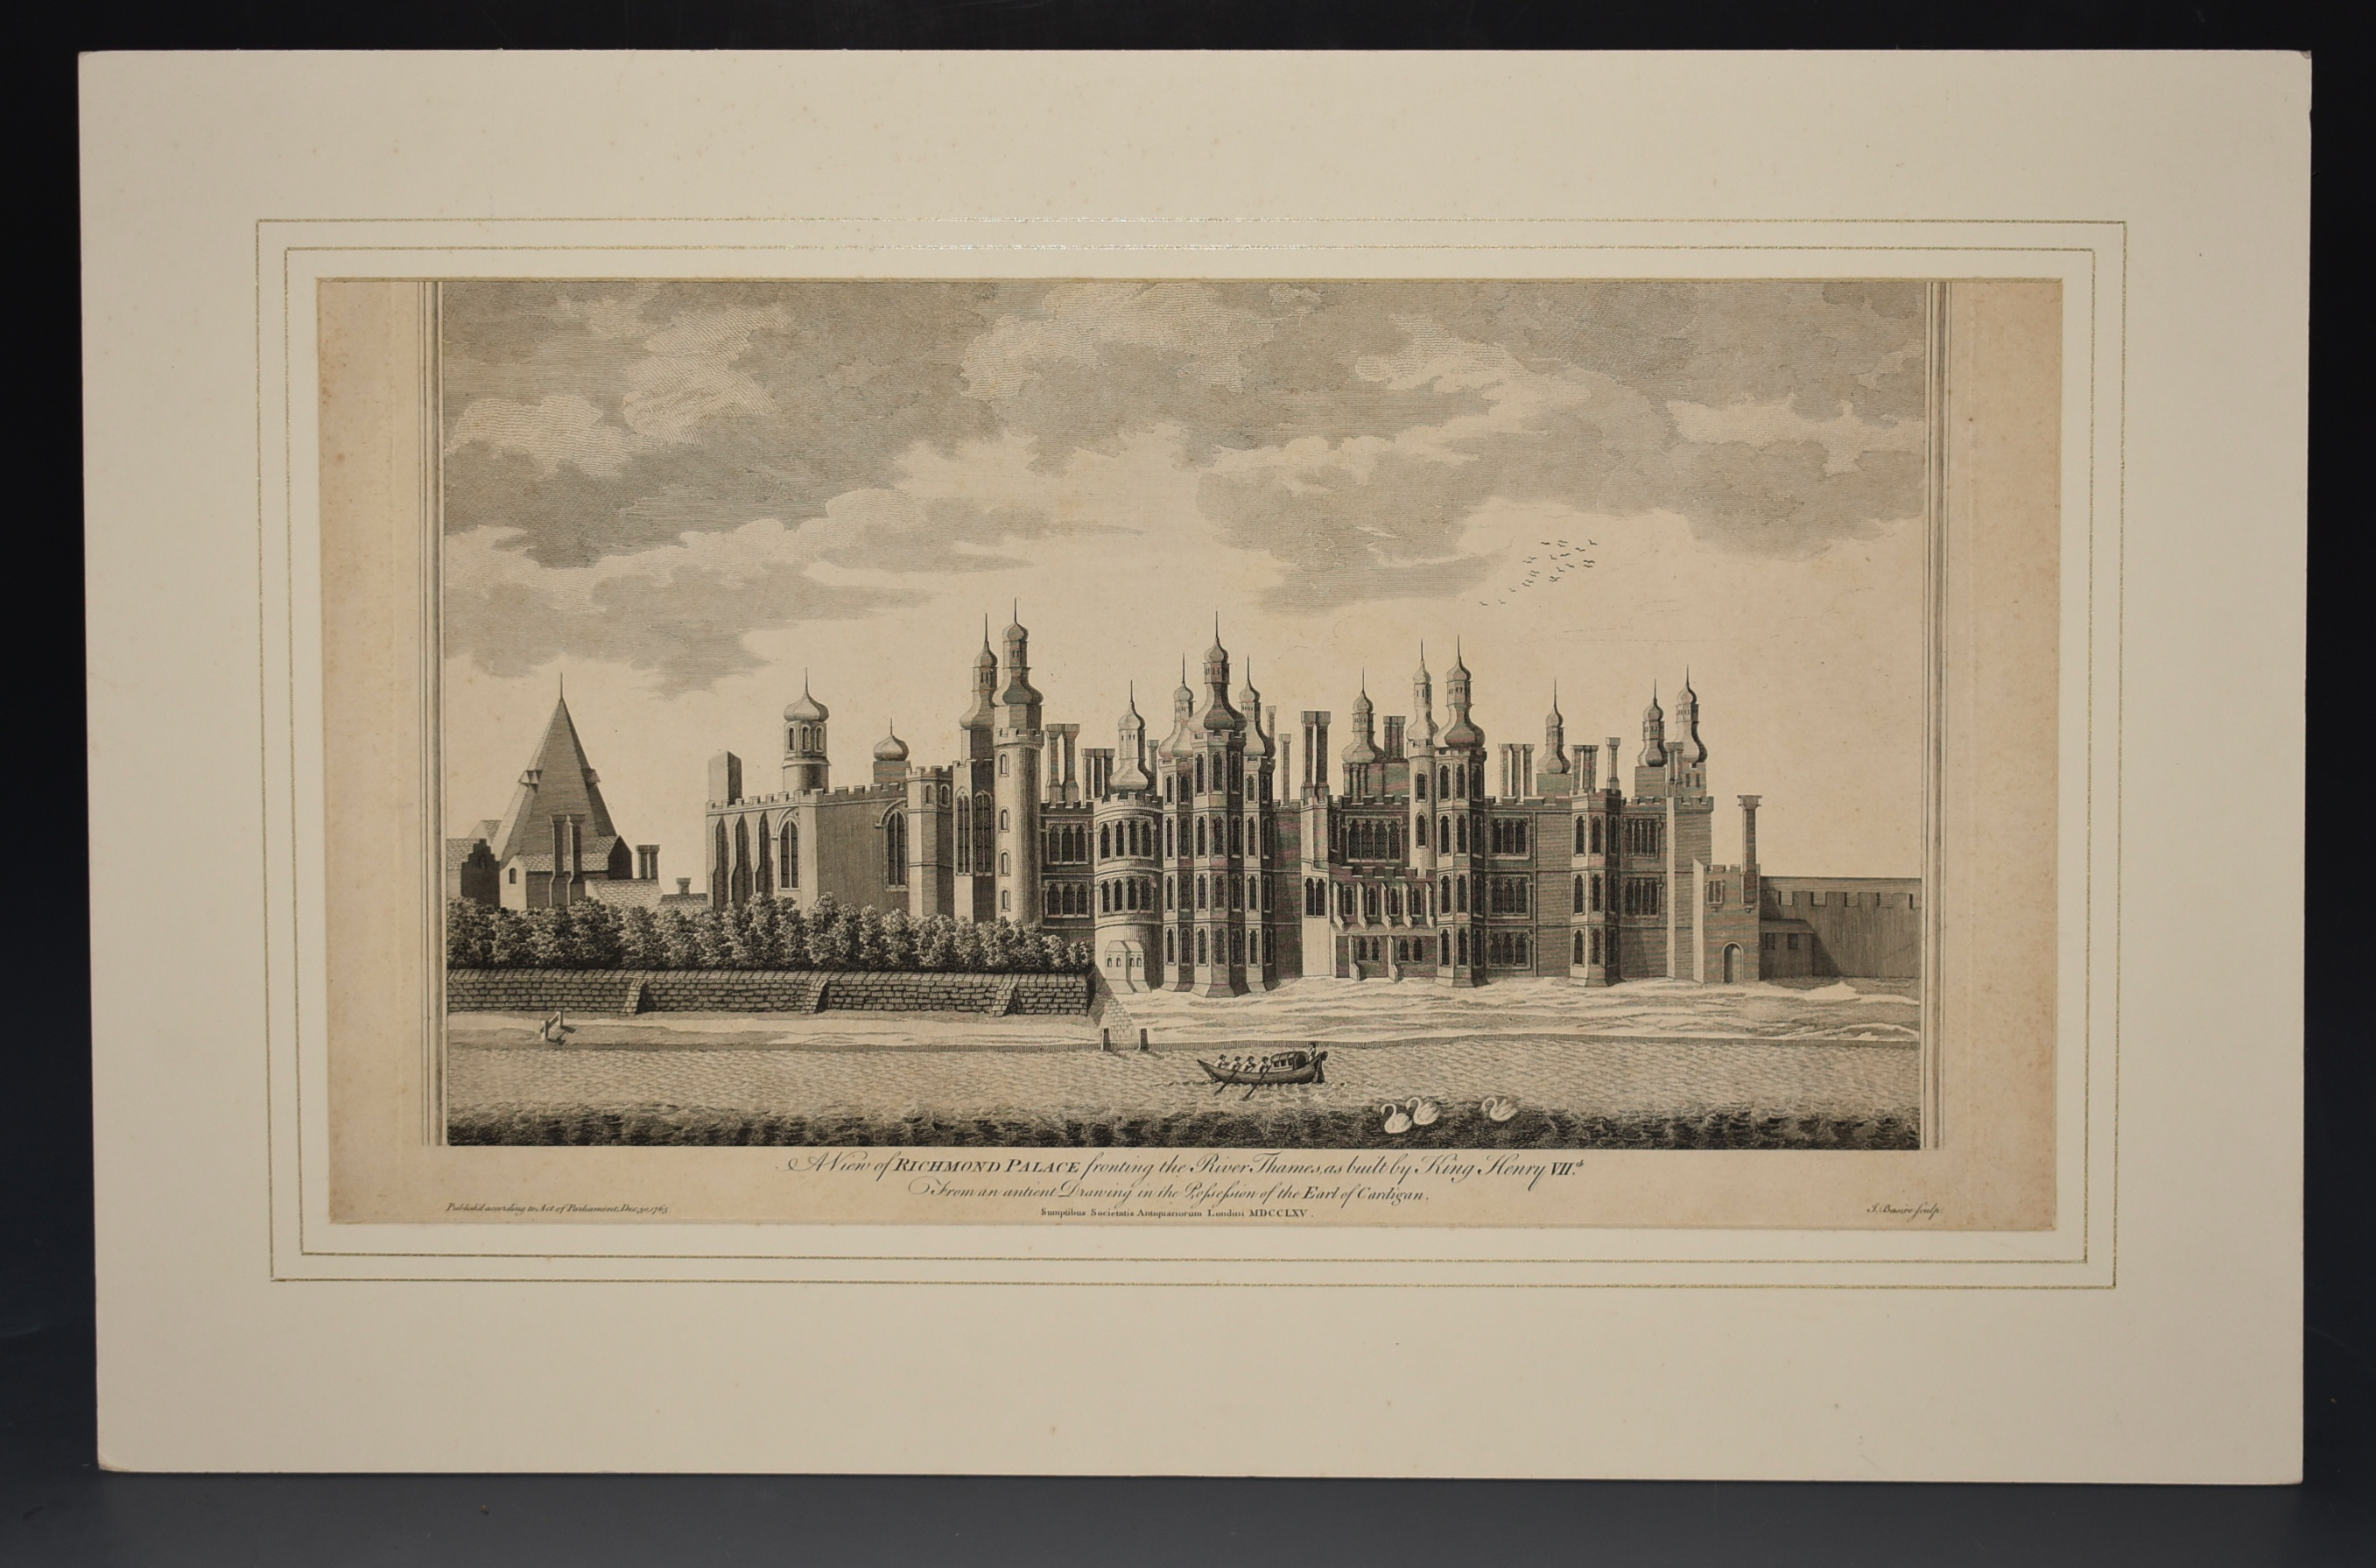 Image for View of Richmond Palace fronting the river Thames, as built by Henry VII. From an ancient drawing in the possesion of the Earl Of Cardigan. Sumptibus Societatis Antiquariorum London MDCCLXV. Published according to Act of Parliament, Dec 30,1765.